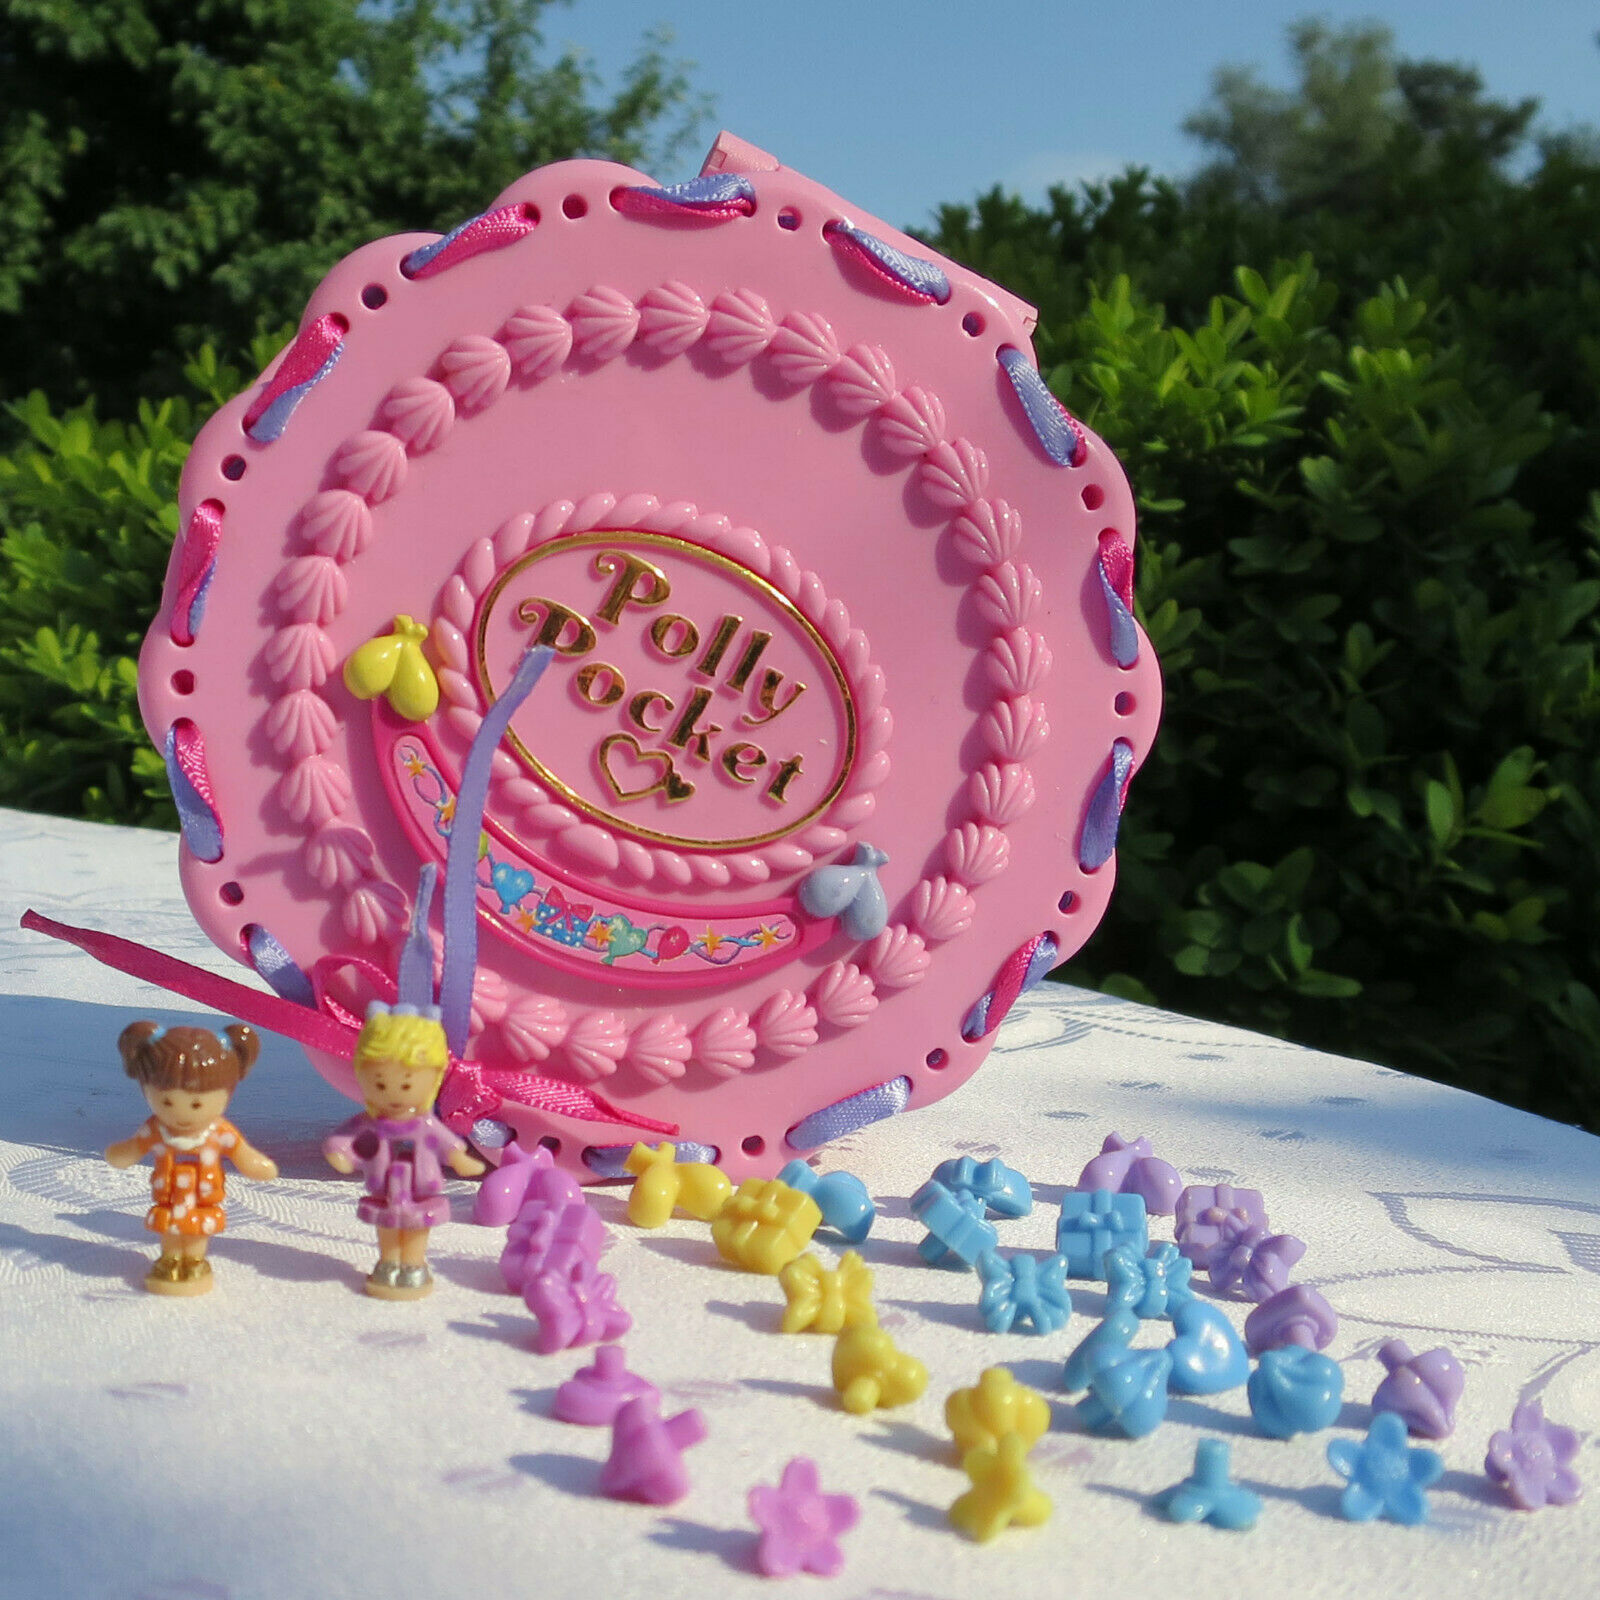 Mini Polly Pocket birthday surprise Cake 100% complete Ribbon 30 conector pastel